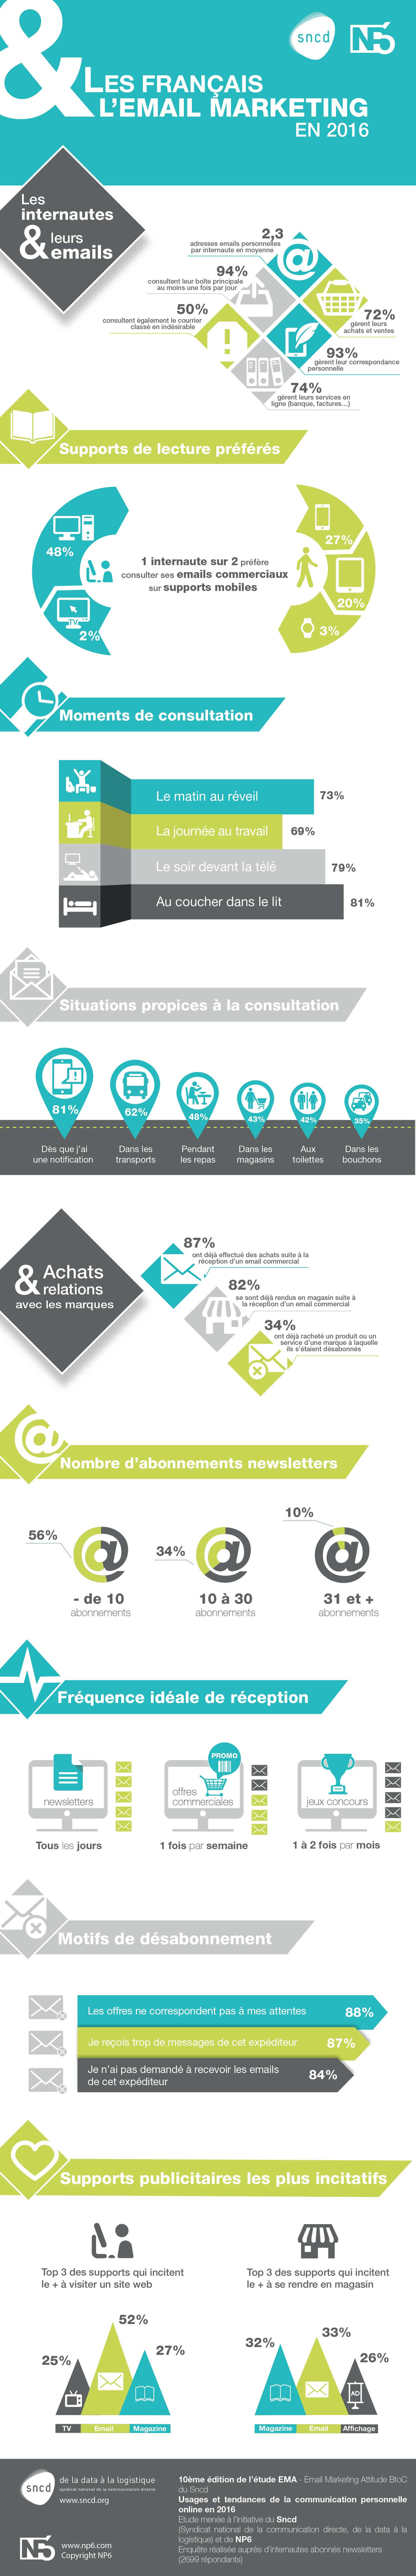 email marketing france_infographie